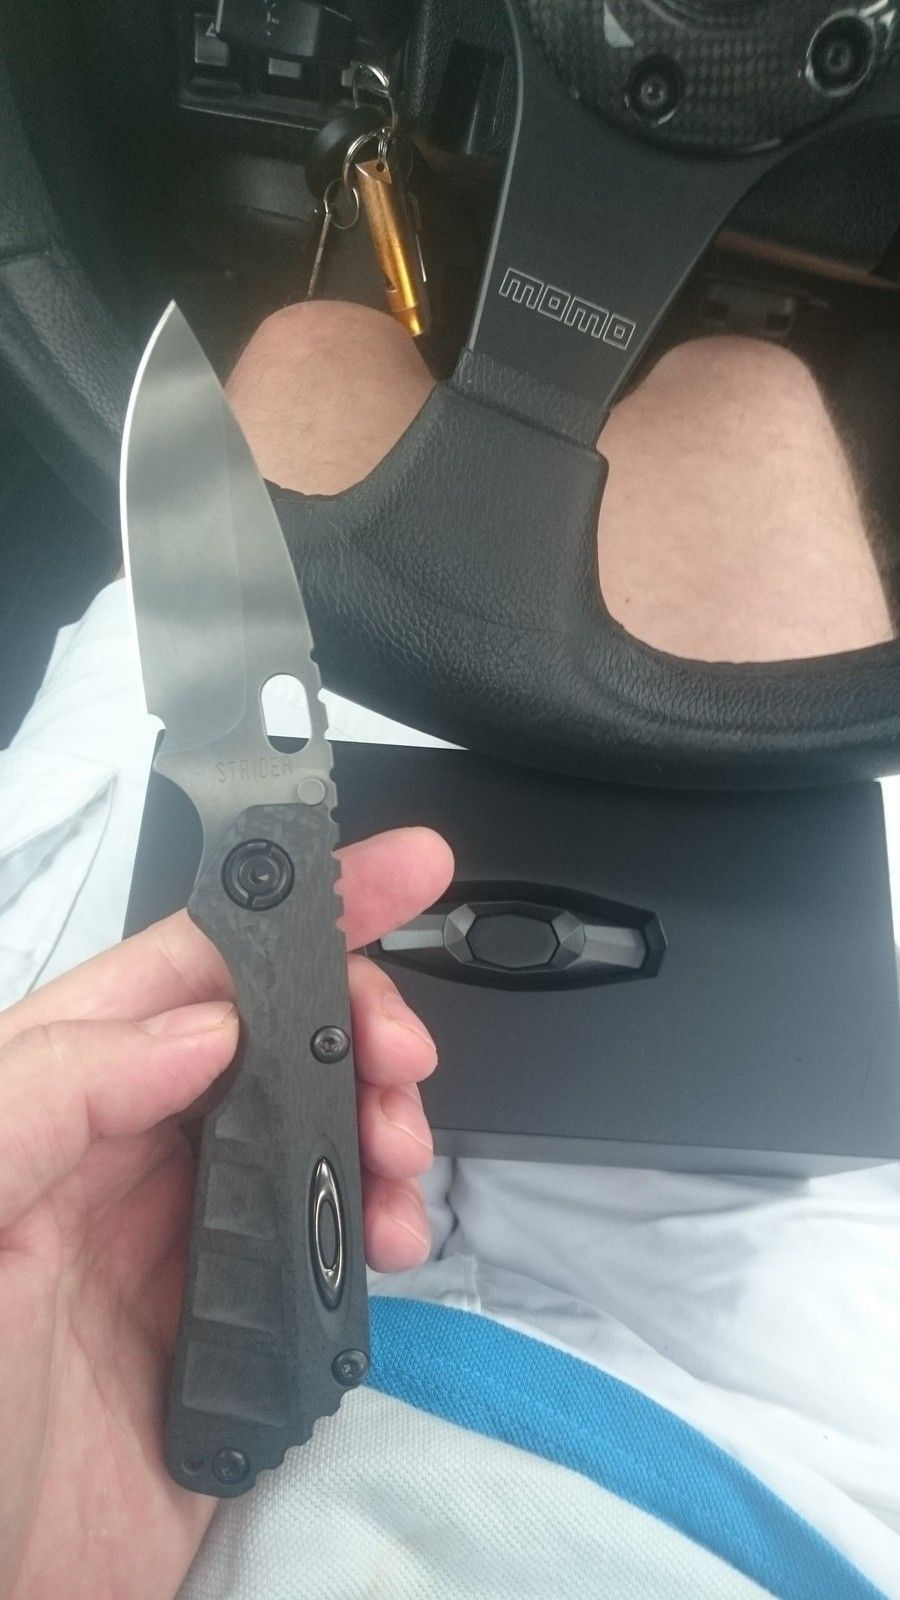 oakley strider knife